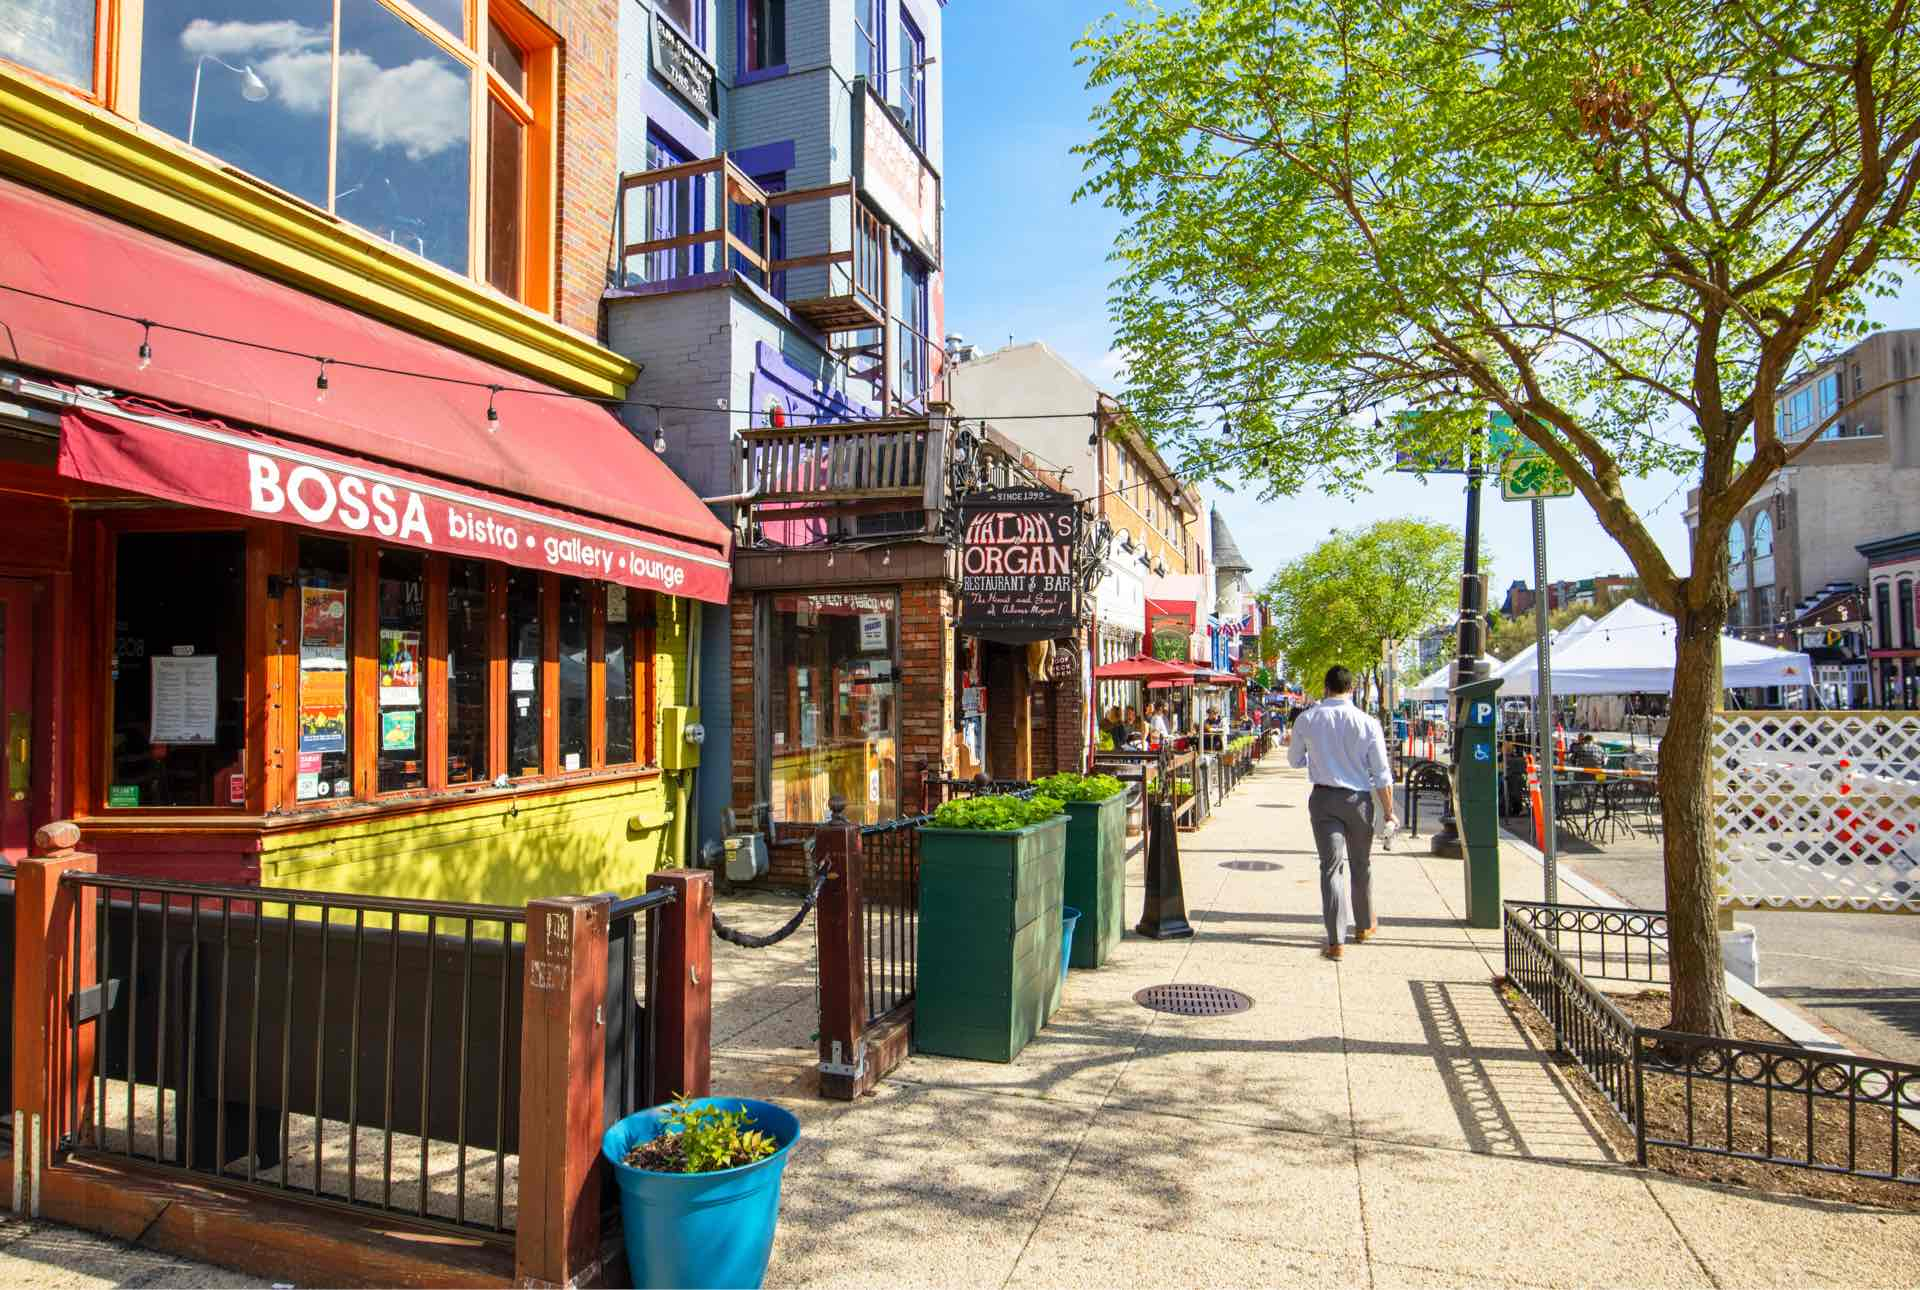 Retail, dining and entertainment in The heart of Adams Morgan